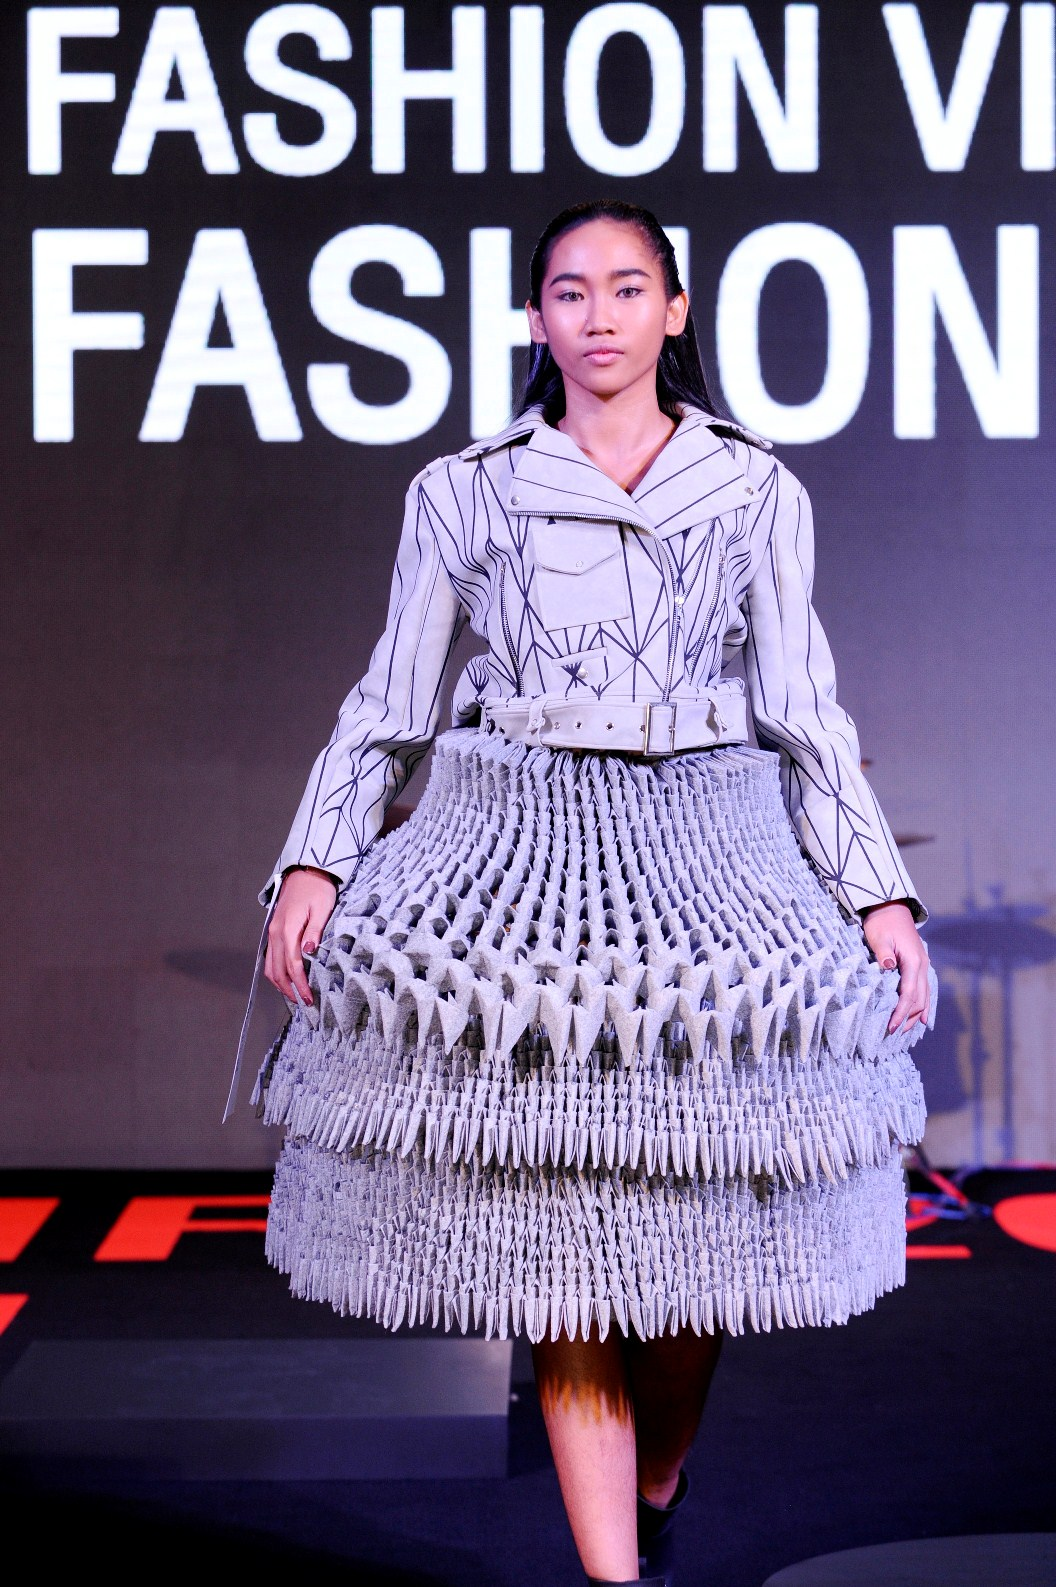 6. Runway Road Fashion Show No.2 Curated by Jitsing Somboon